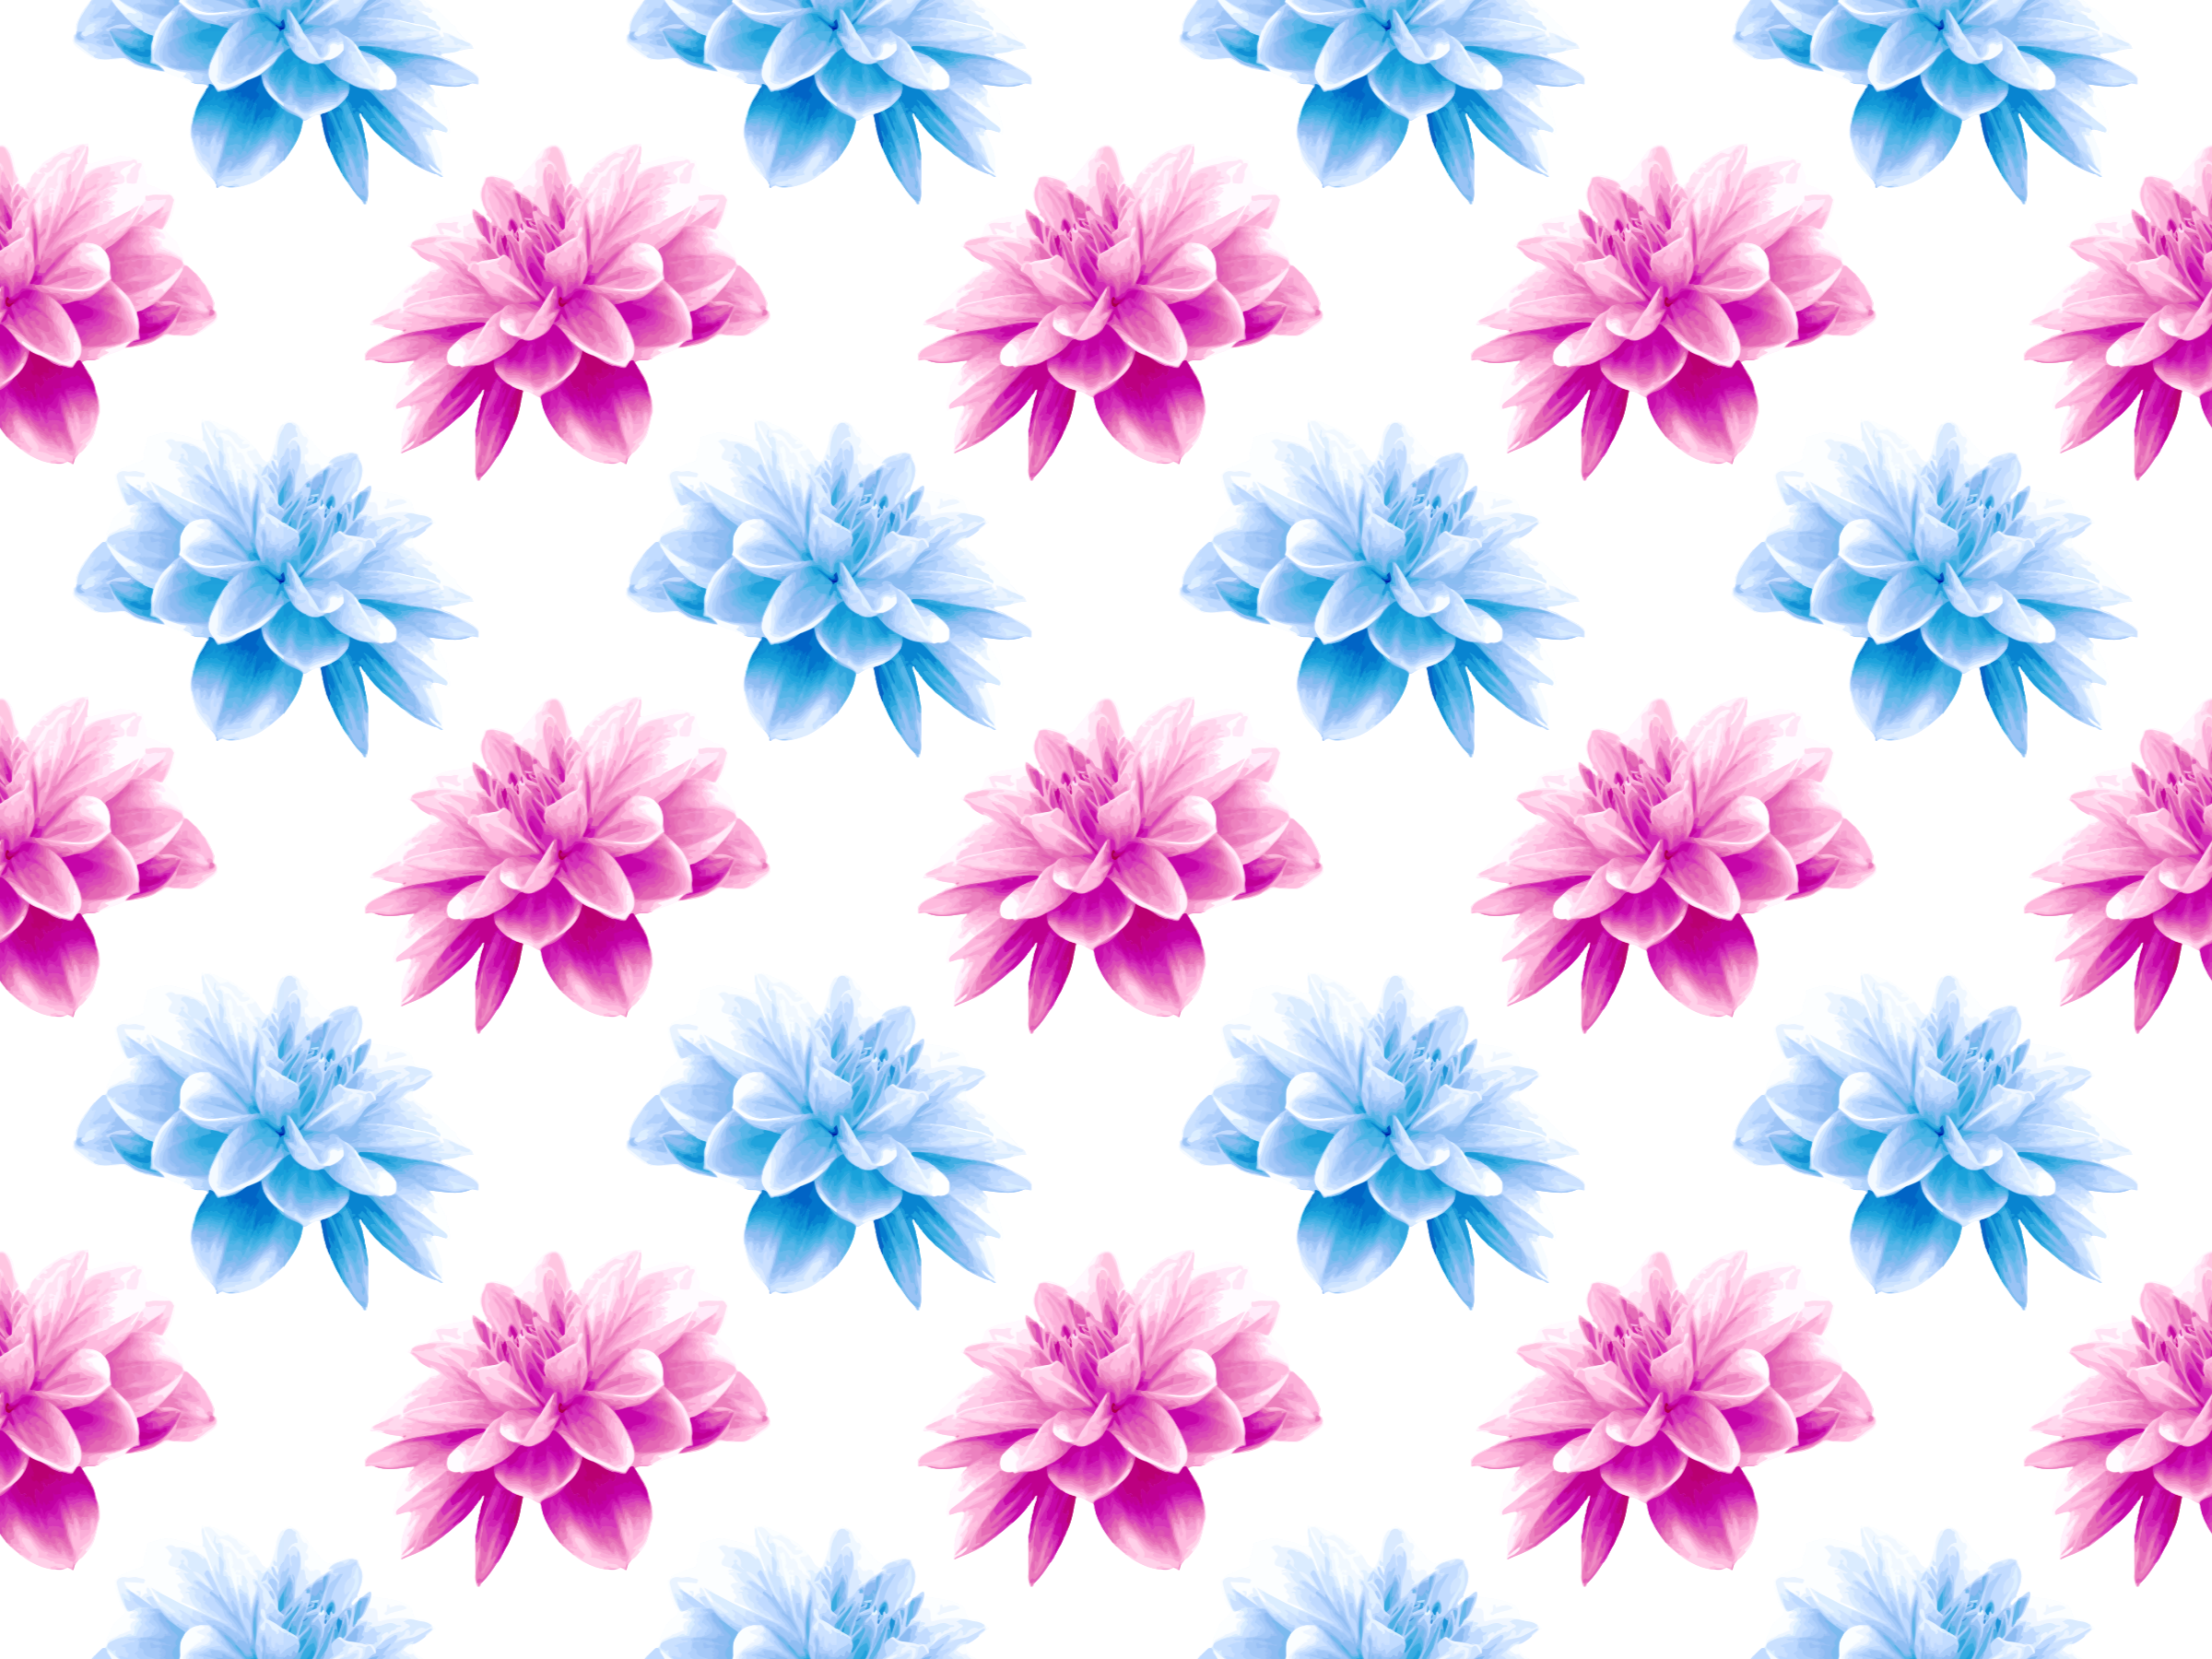 Flower pattern 5 (fuller colours) by Firkin